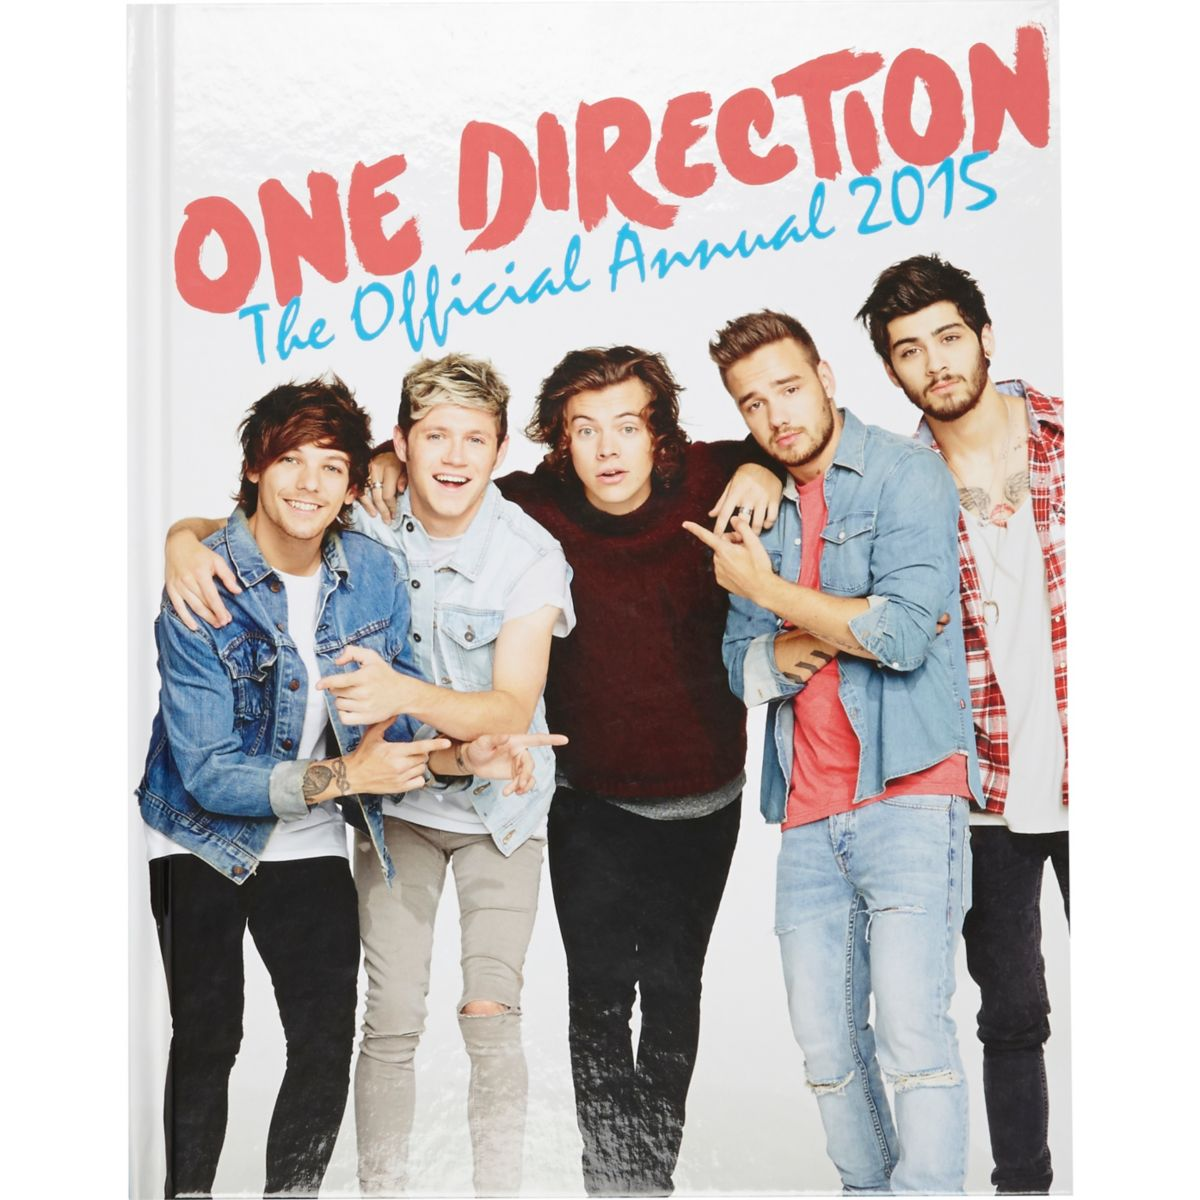 One Direction official 2015 annual